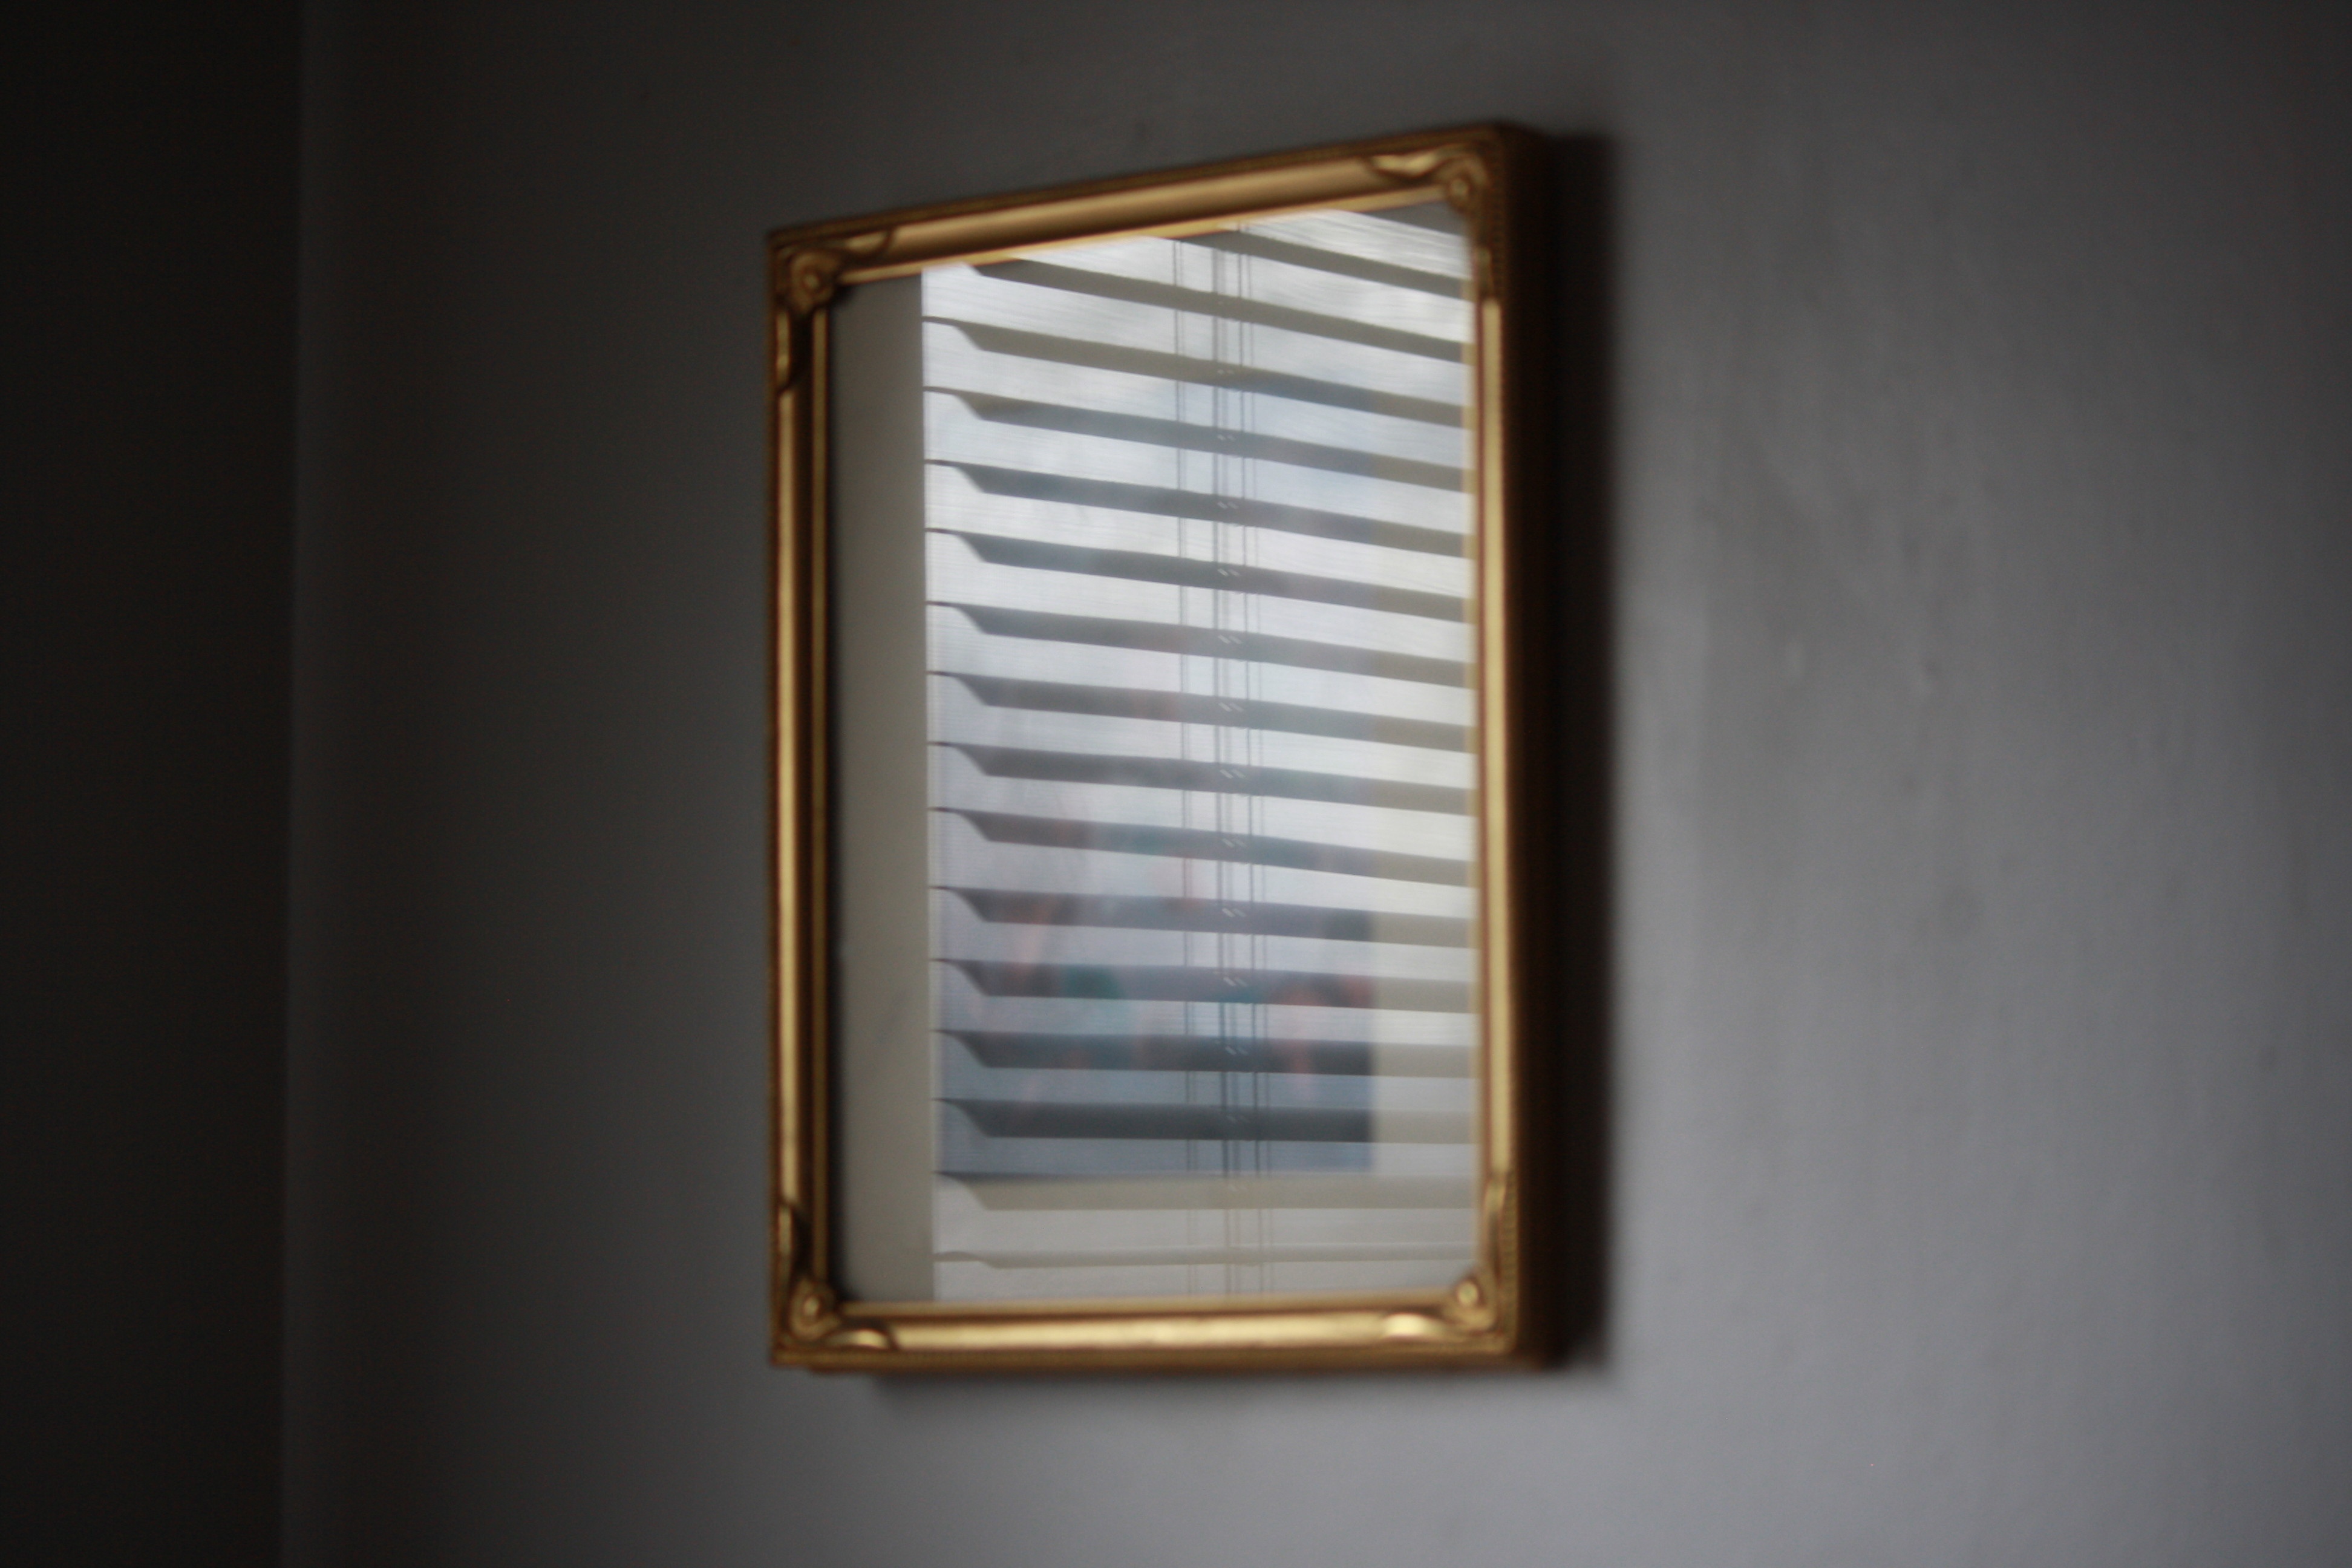 mini blind reflected in picture frame glass free high resolution photo